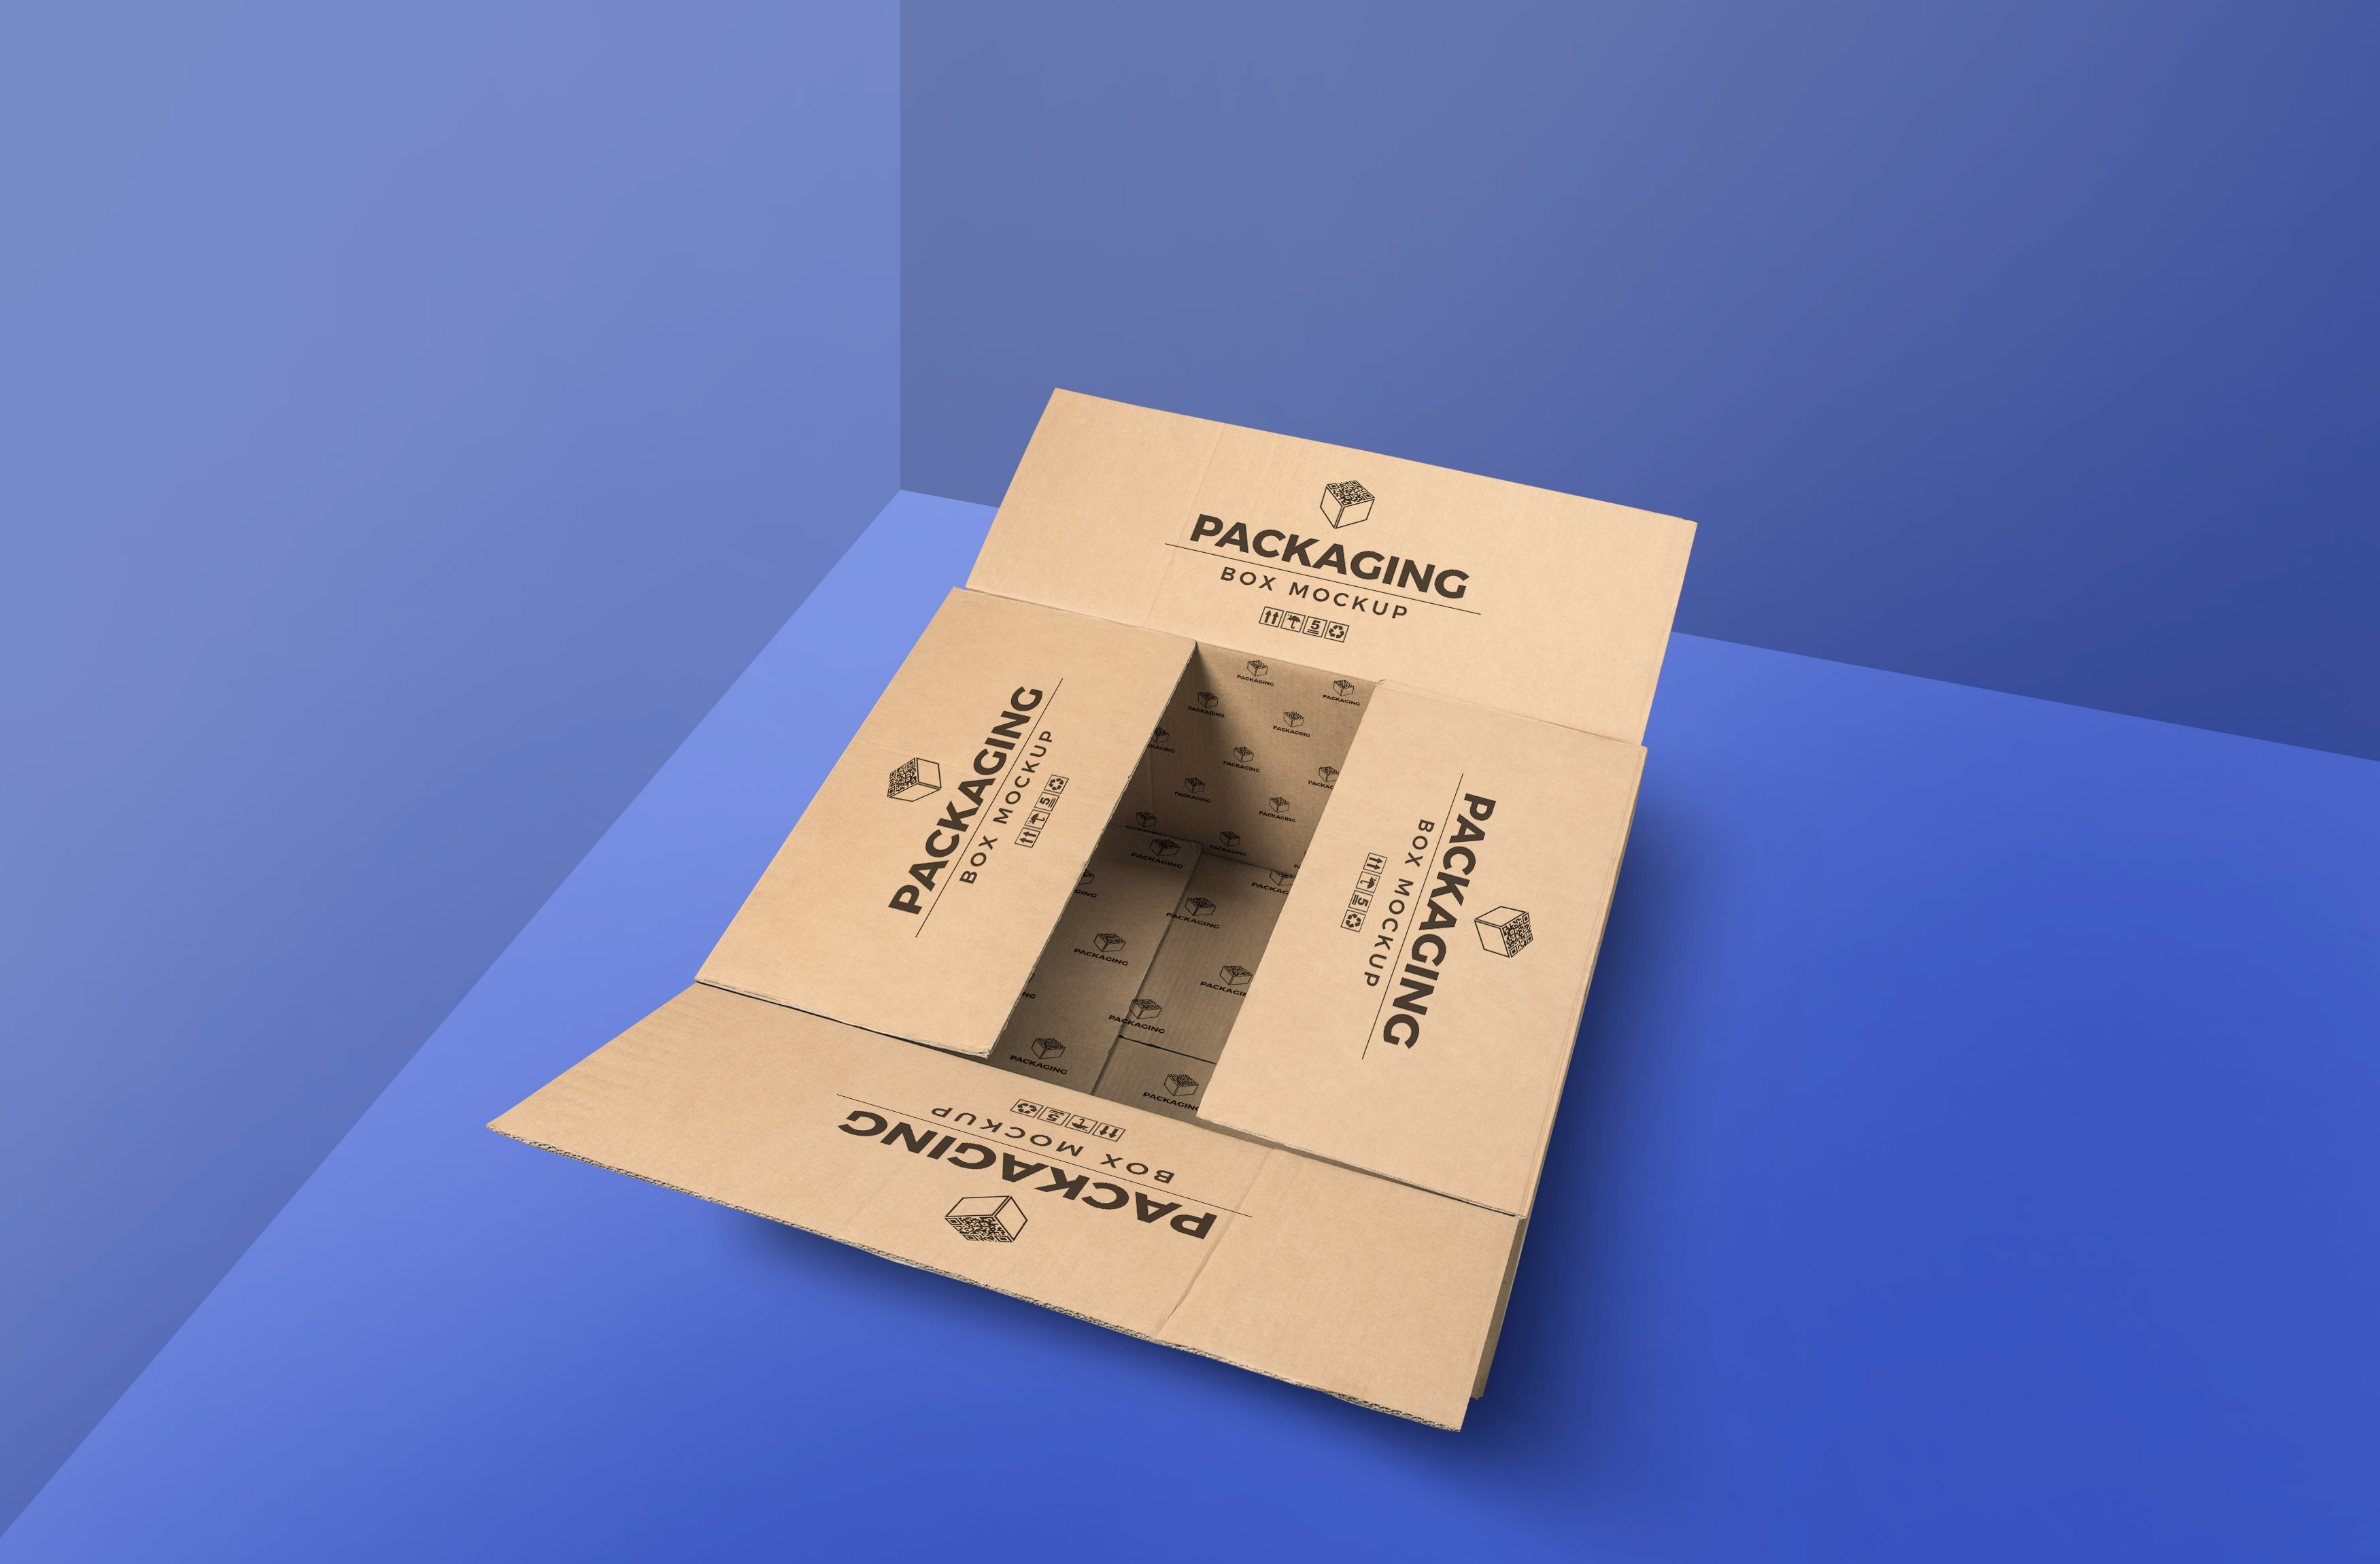 packaging-box-mockup-bonus-2.jpg